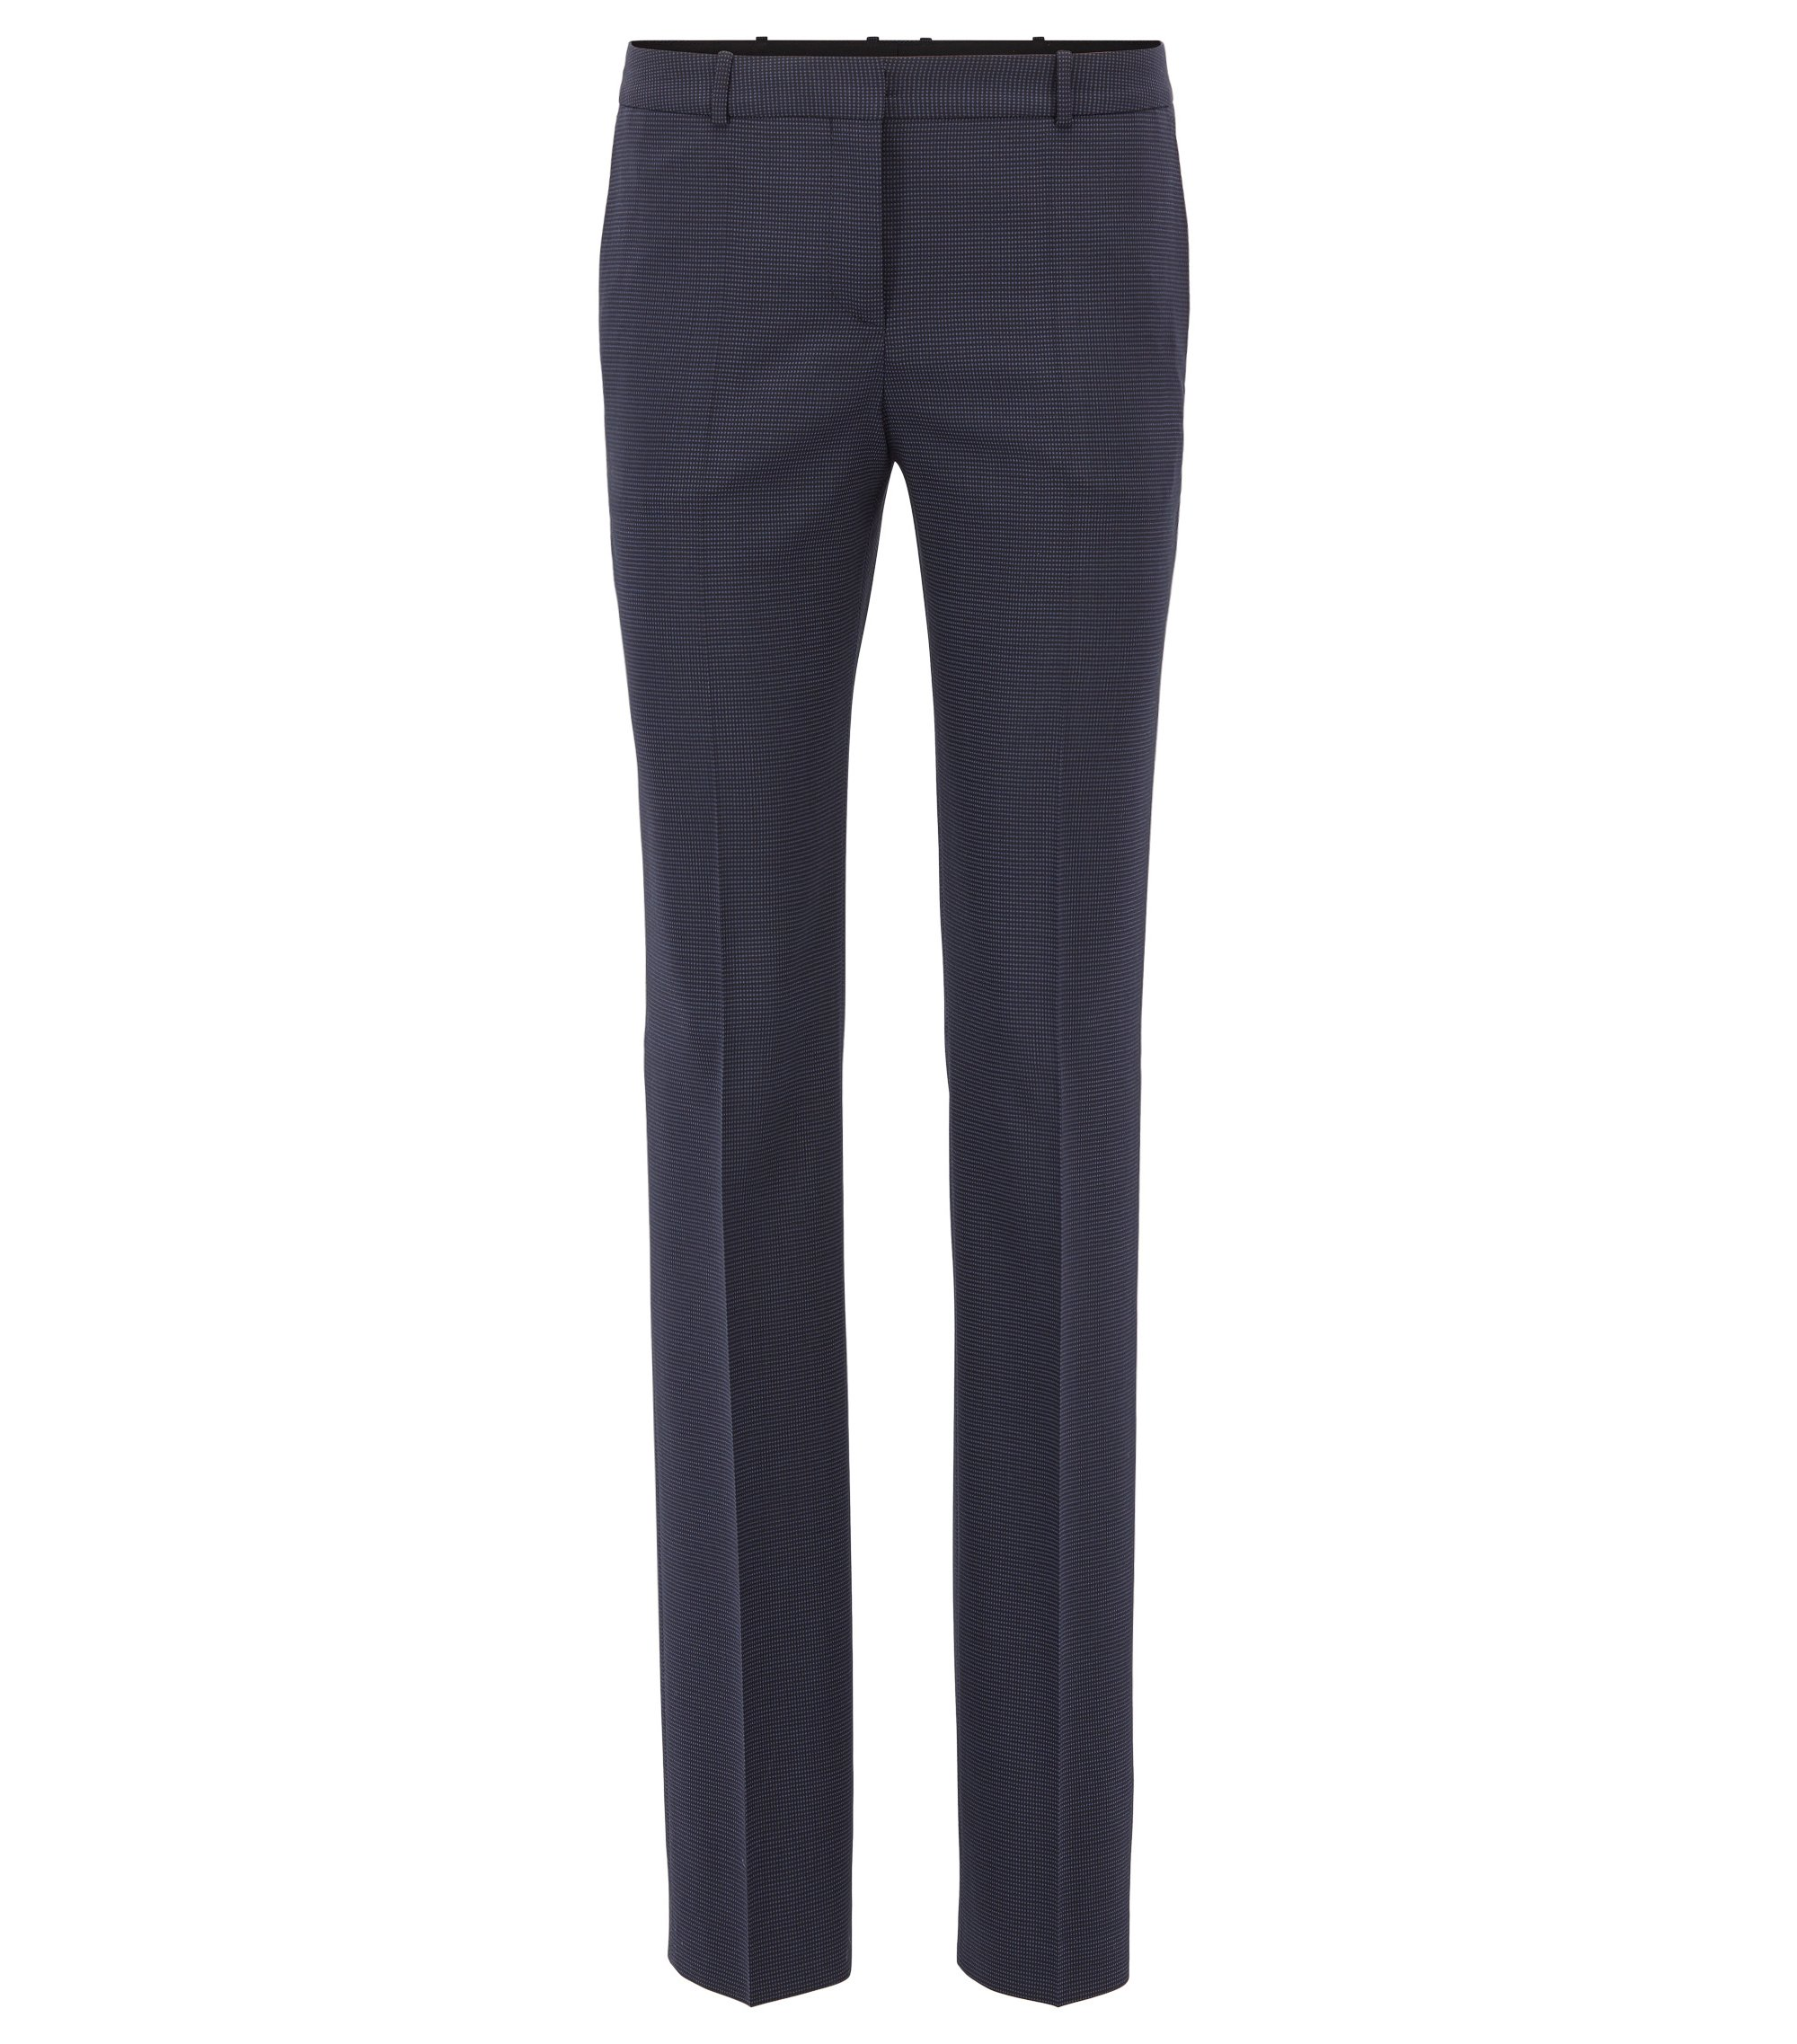 Pantalon ajusté Regular Fit en laine vierge stretch, Fantaisie